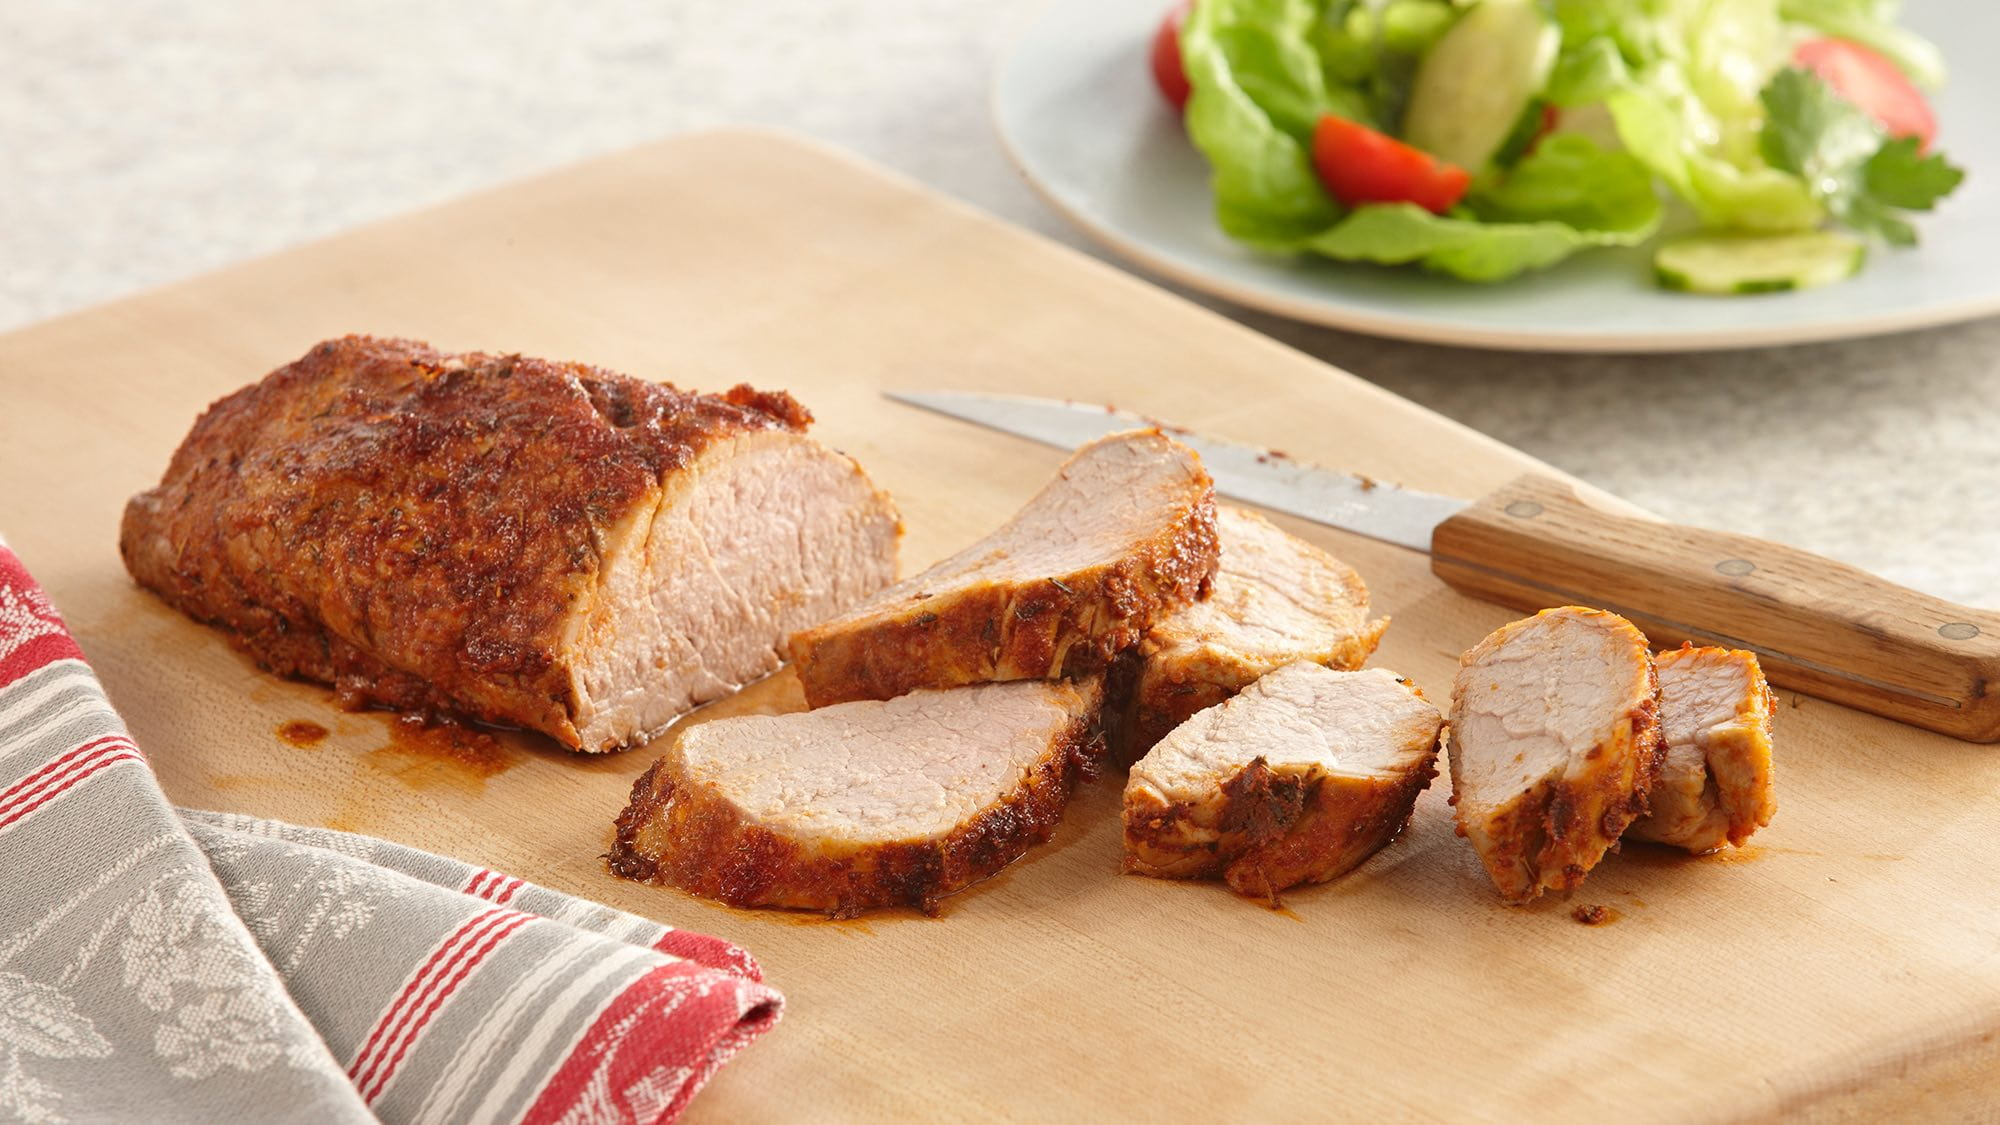 SMOKED PAPRIKA PORK TENDERLOIN